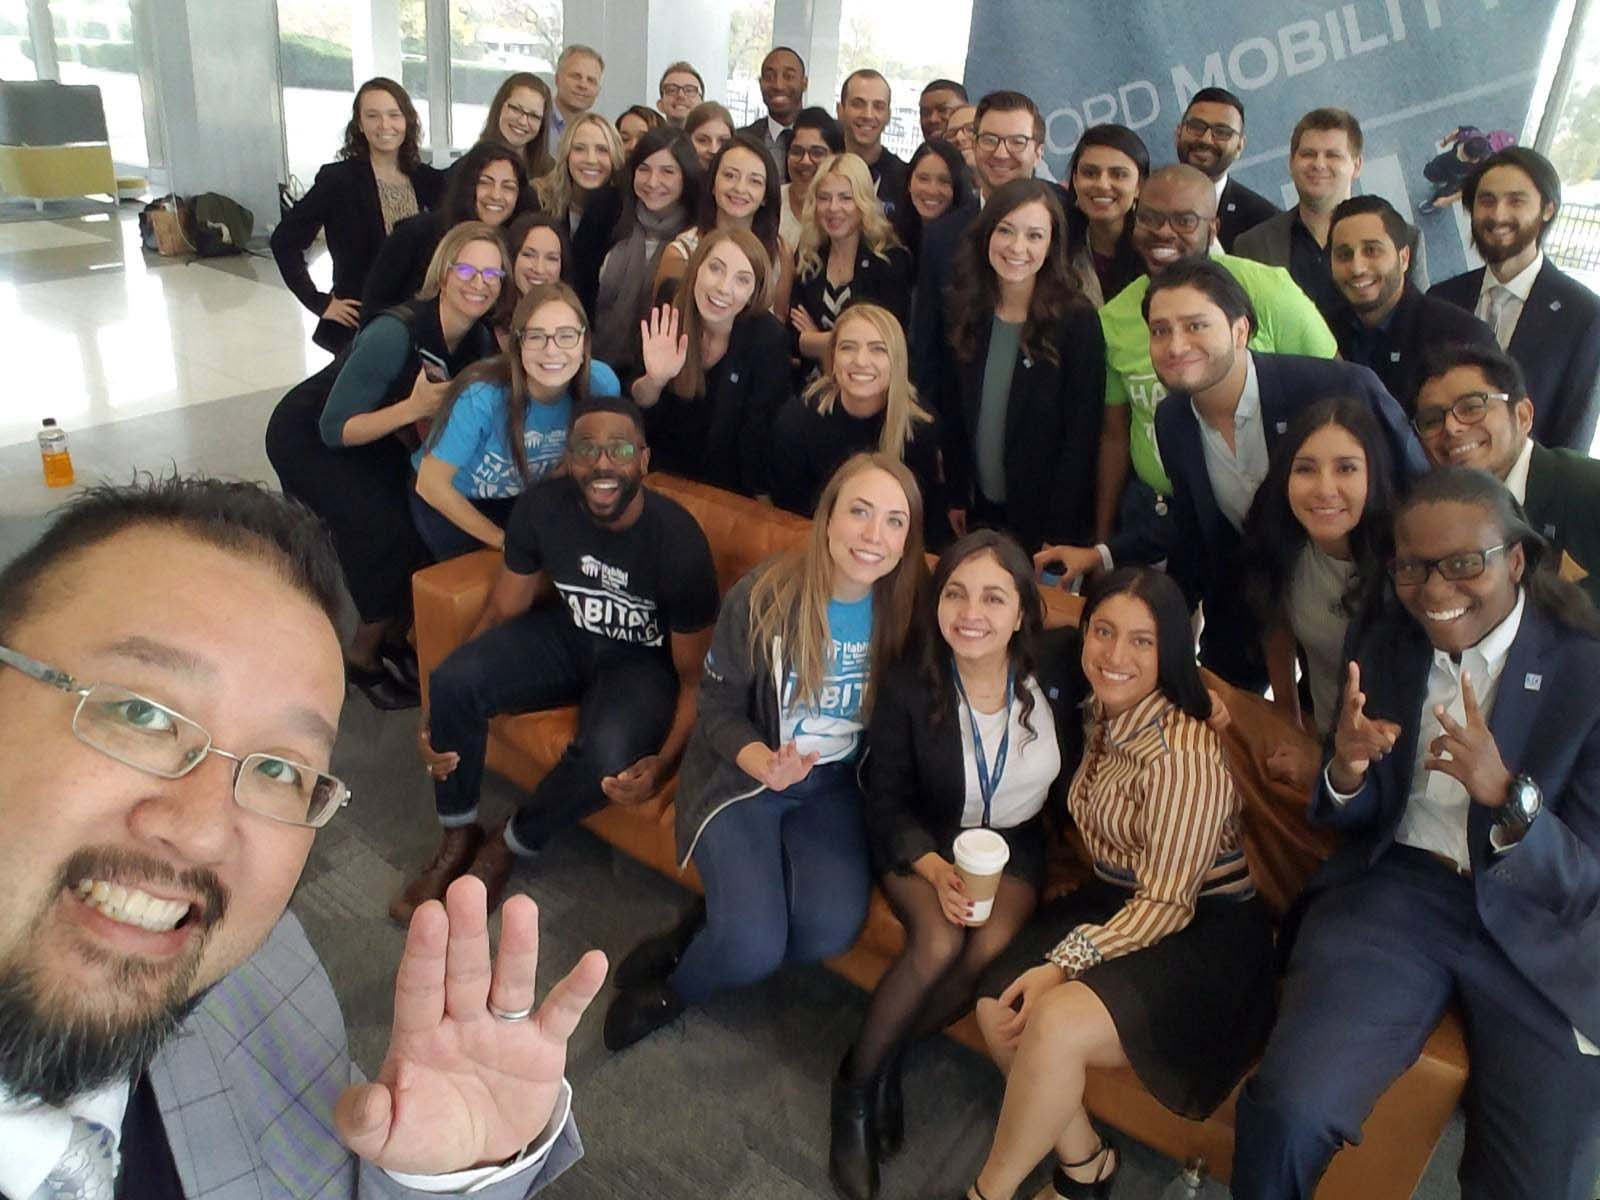 John Hagermanfletcher in the back row on the right in this group shot of the 2019 class of Thirty Under 30 fellows